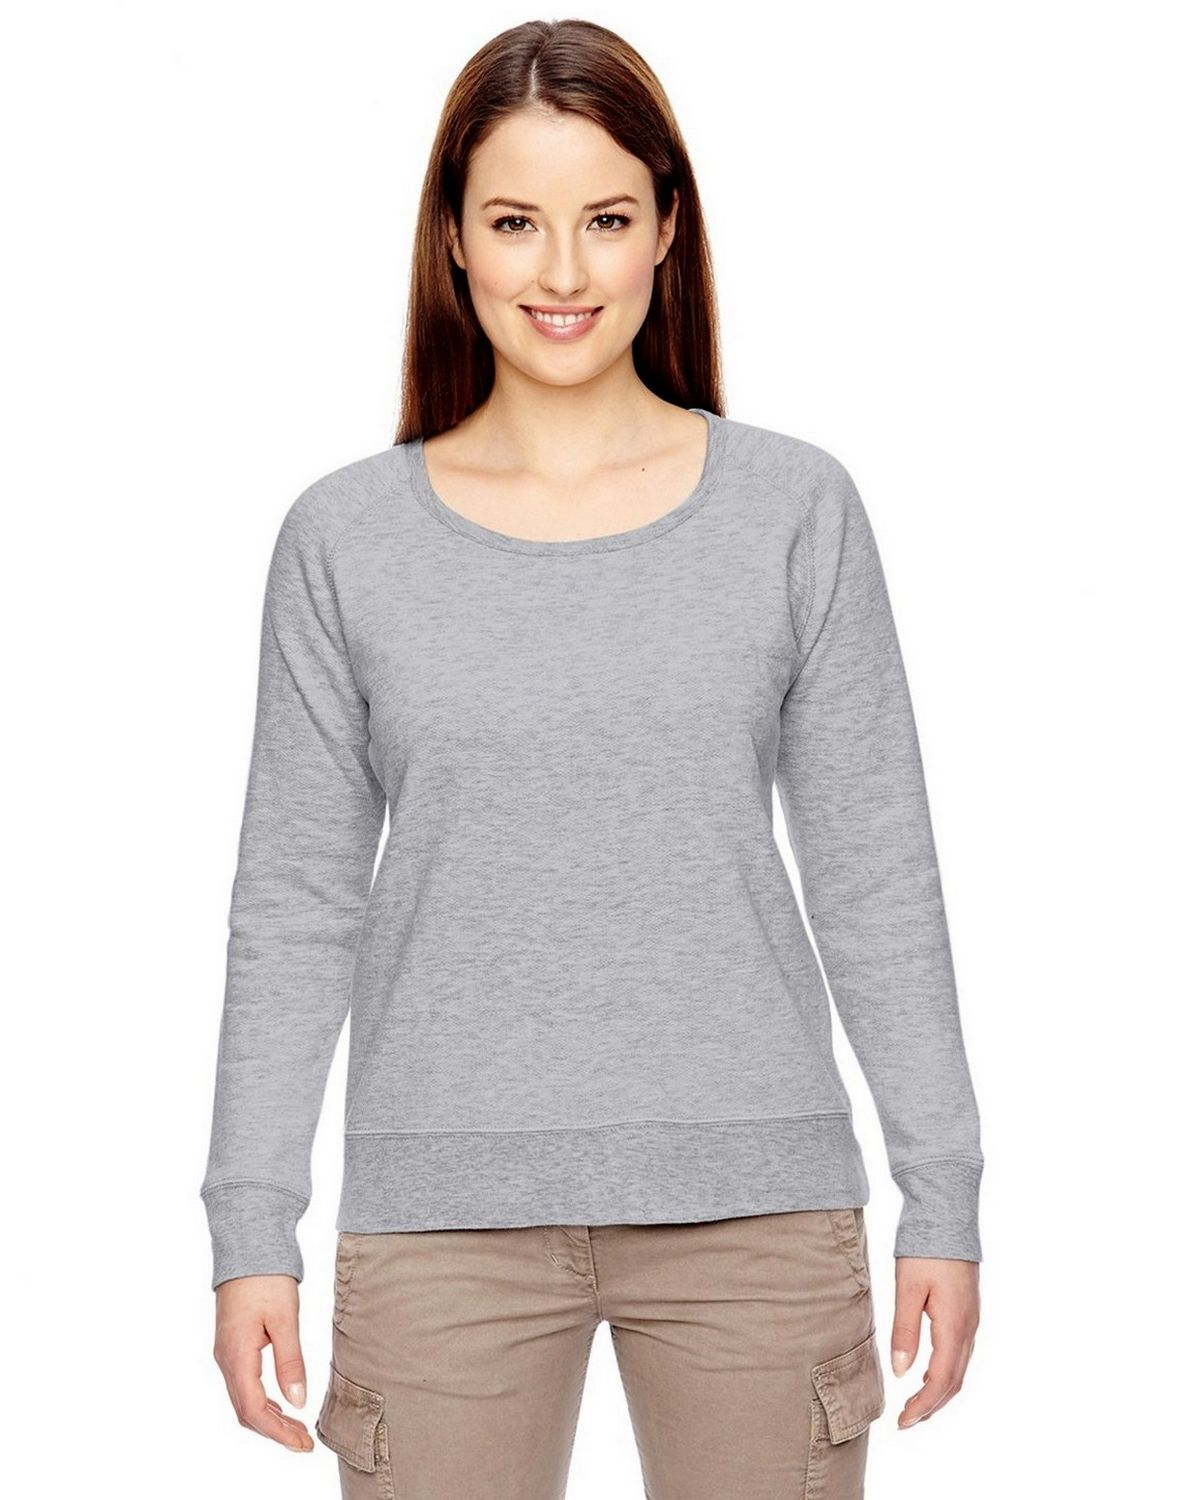 Econscious EC4505 Ladies Pullover - Athletic Gray - S EC4505